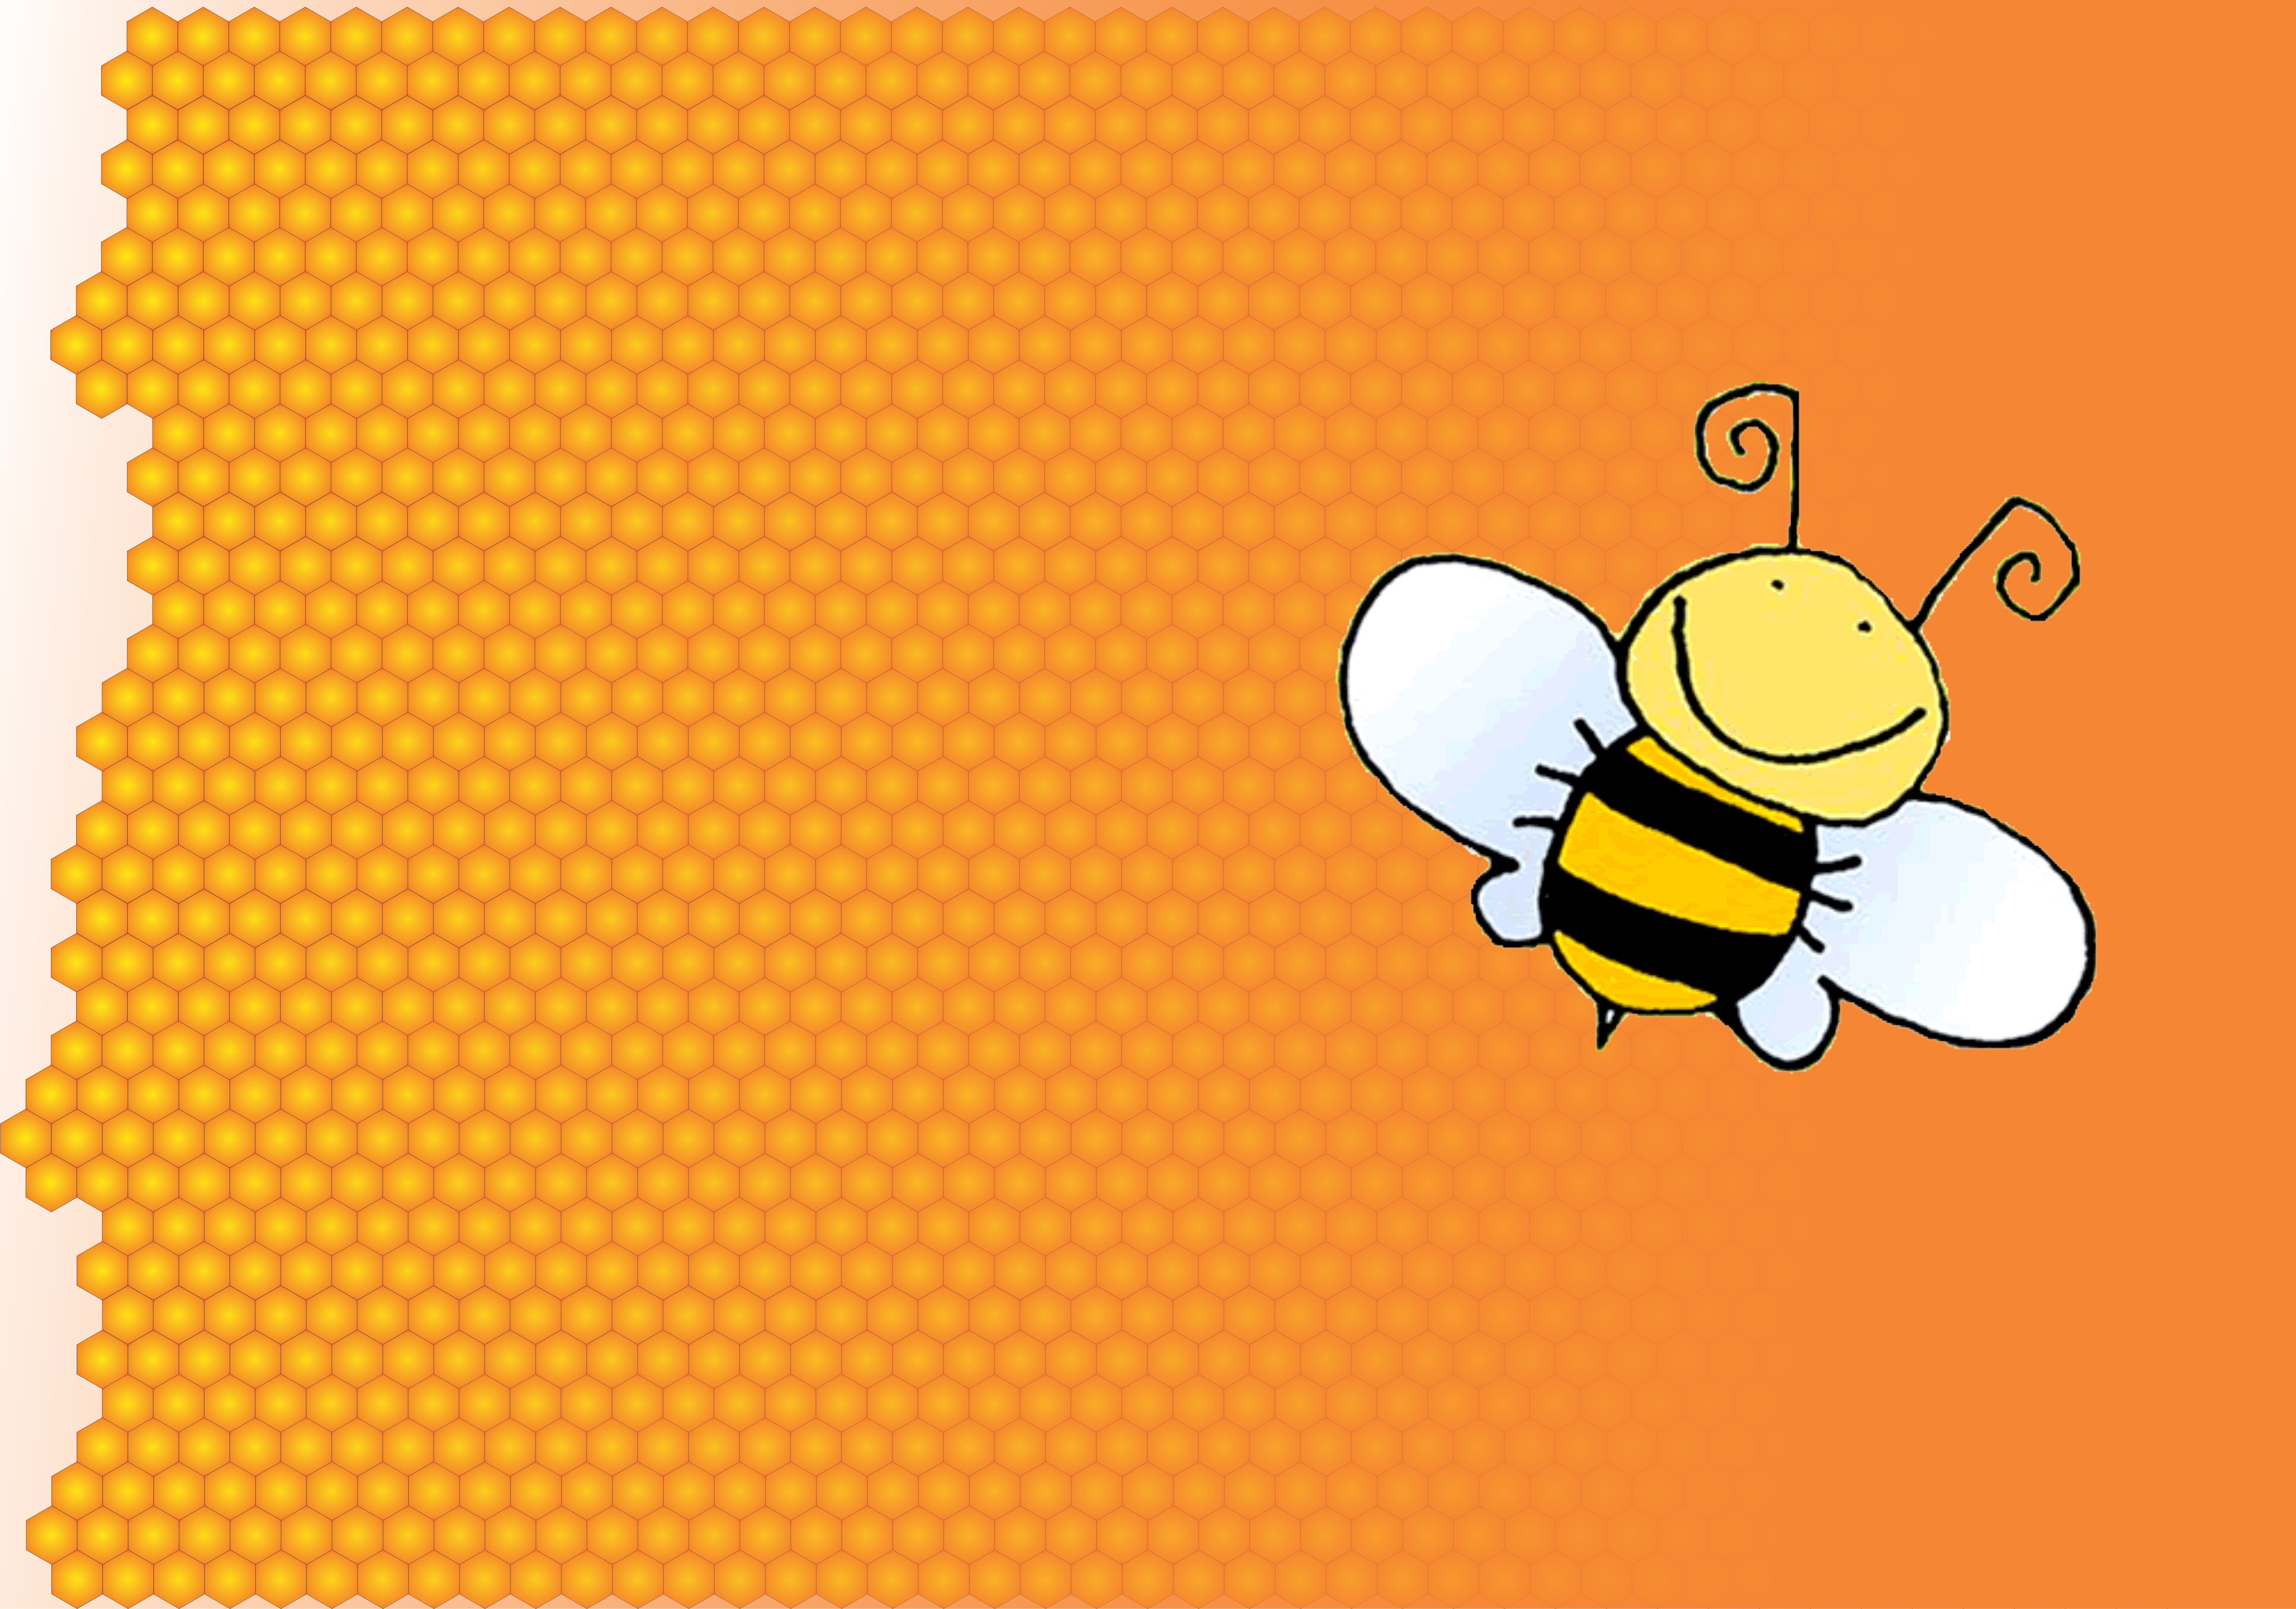 Bee Wallpaper, Best Bee Wallpapers, Wide 100% Quality HD Backgrounds